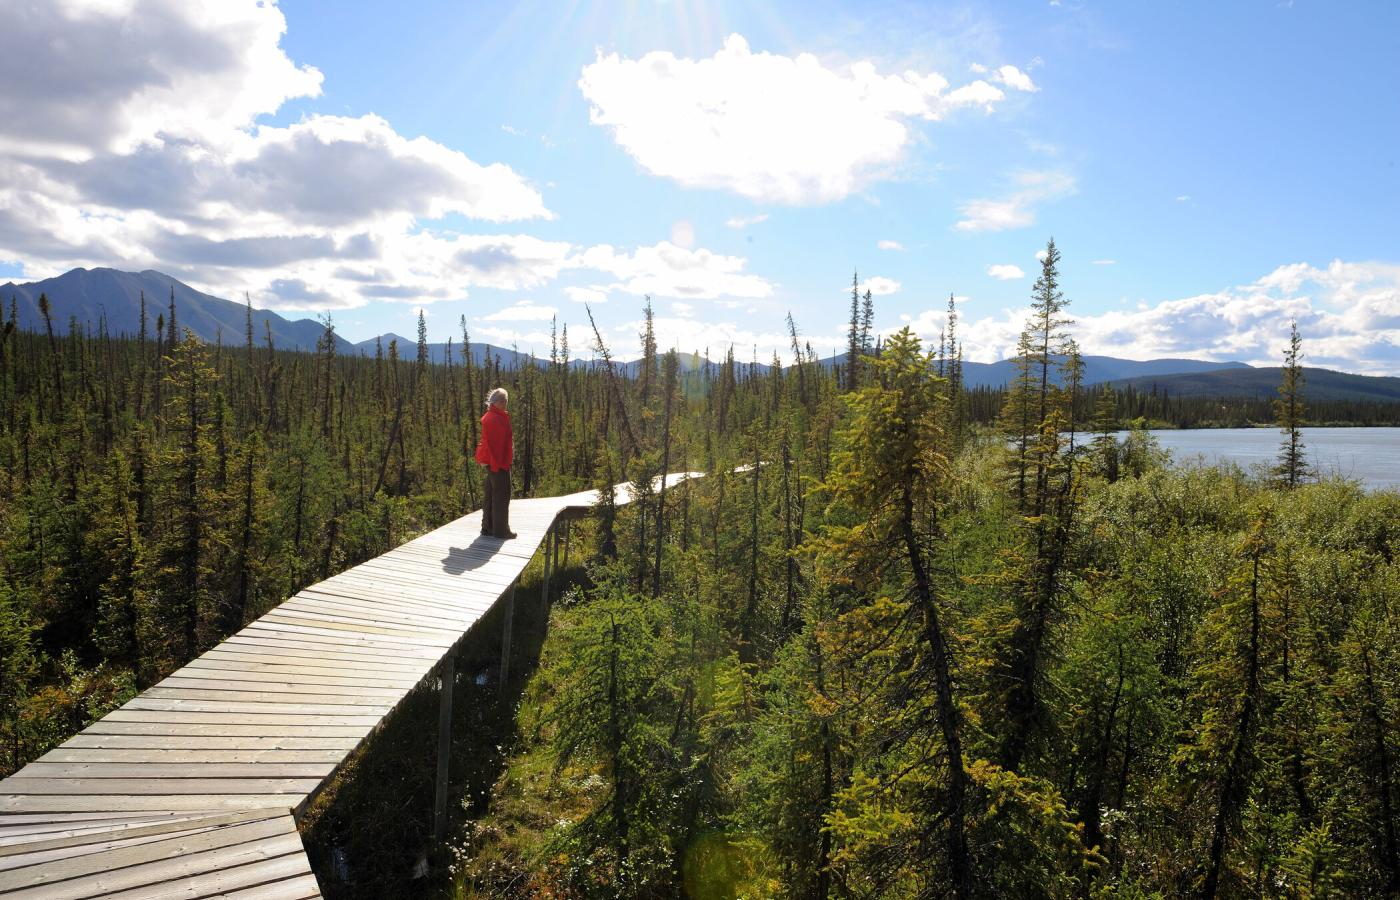 Virginia Falls has a network of trails in the Nahanni National Park Reserve in Canada's Northwest Territories.